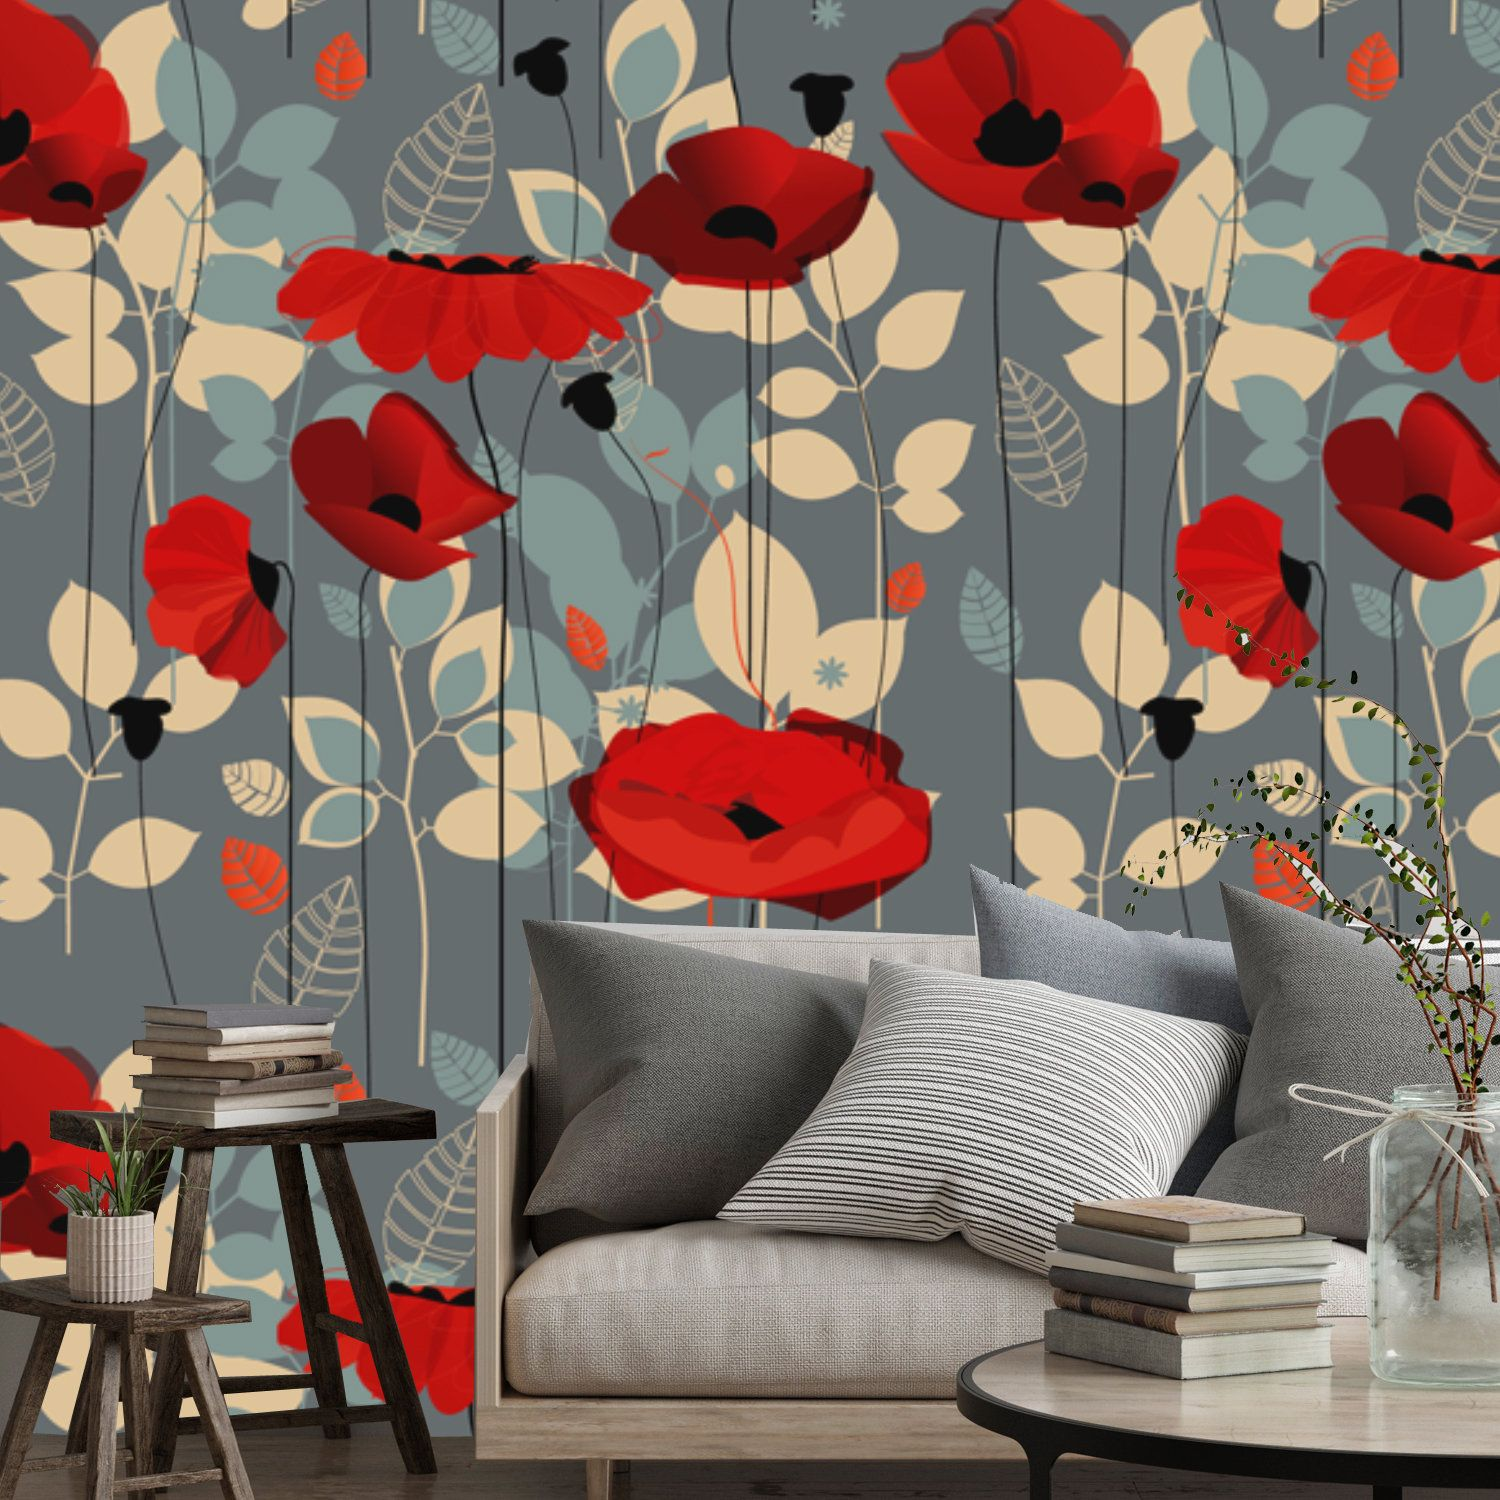 Large Floral Wallpaper Mural Of Red Poppy Flowers On Gray Etsy In 2021 Large Floral Wallpaper Floral Wallpaper Mural Wallpaper